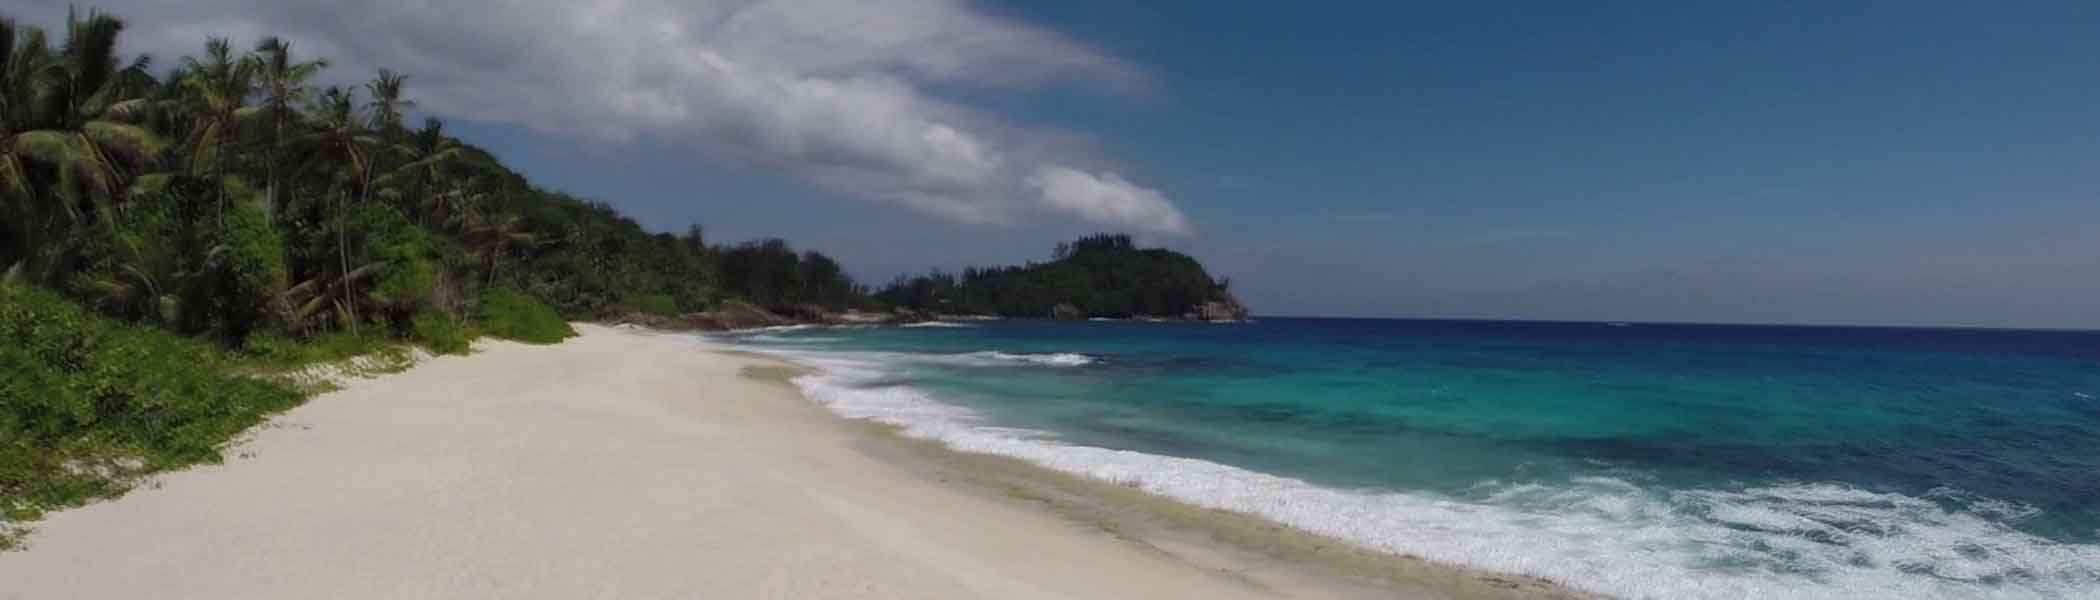 anse-bazarca, Beaches in Seychelles Islands